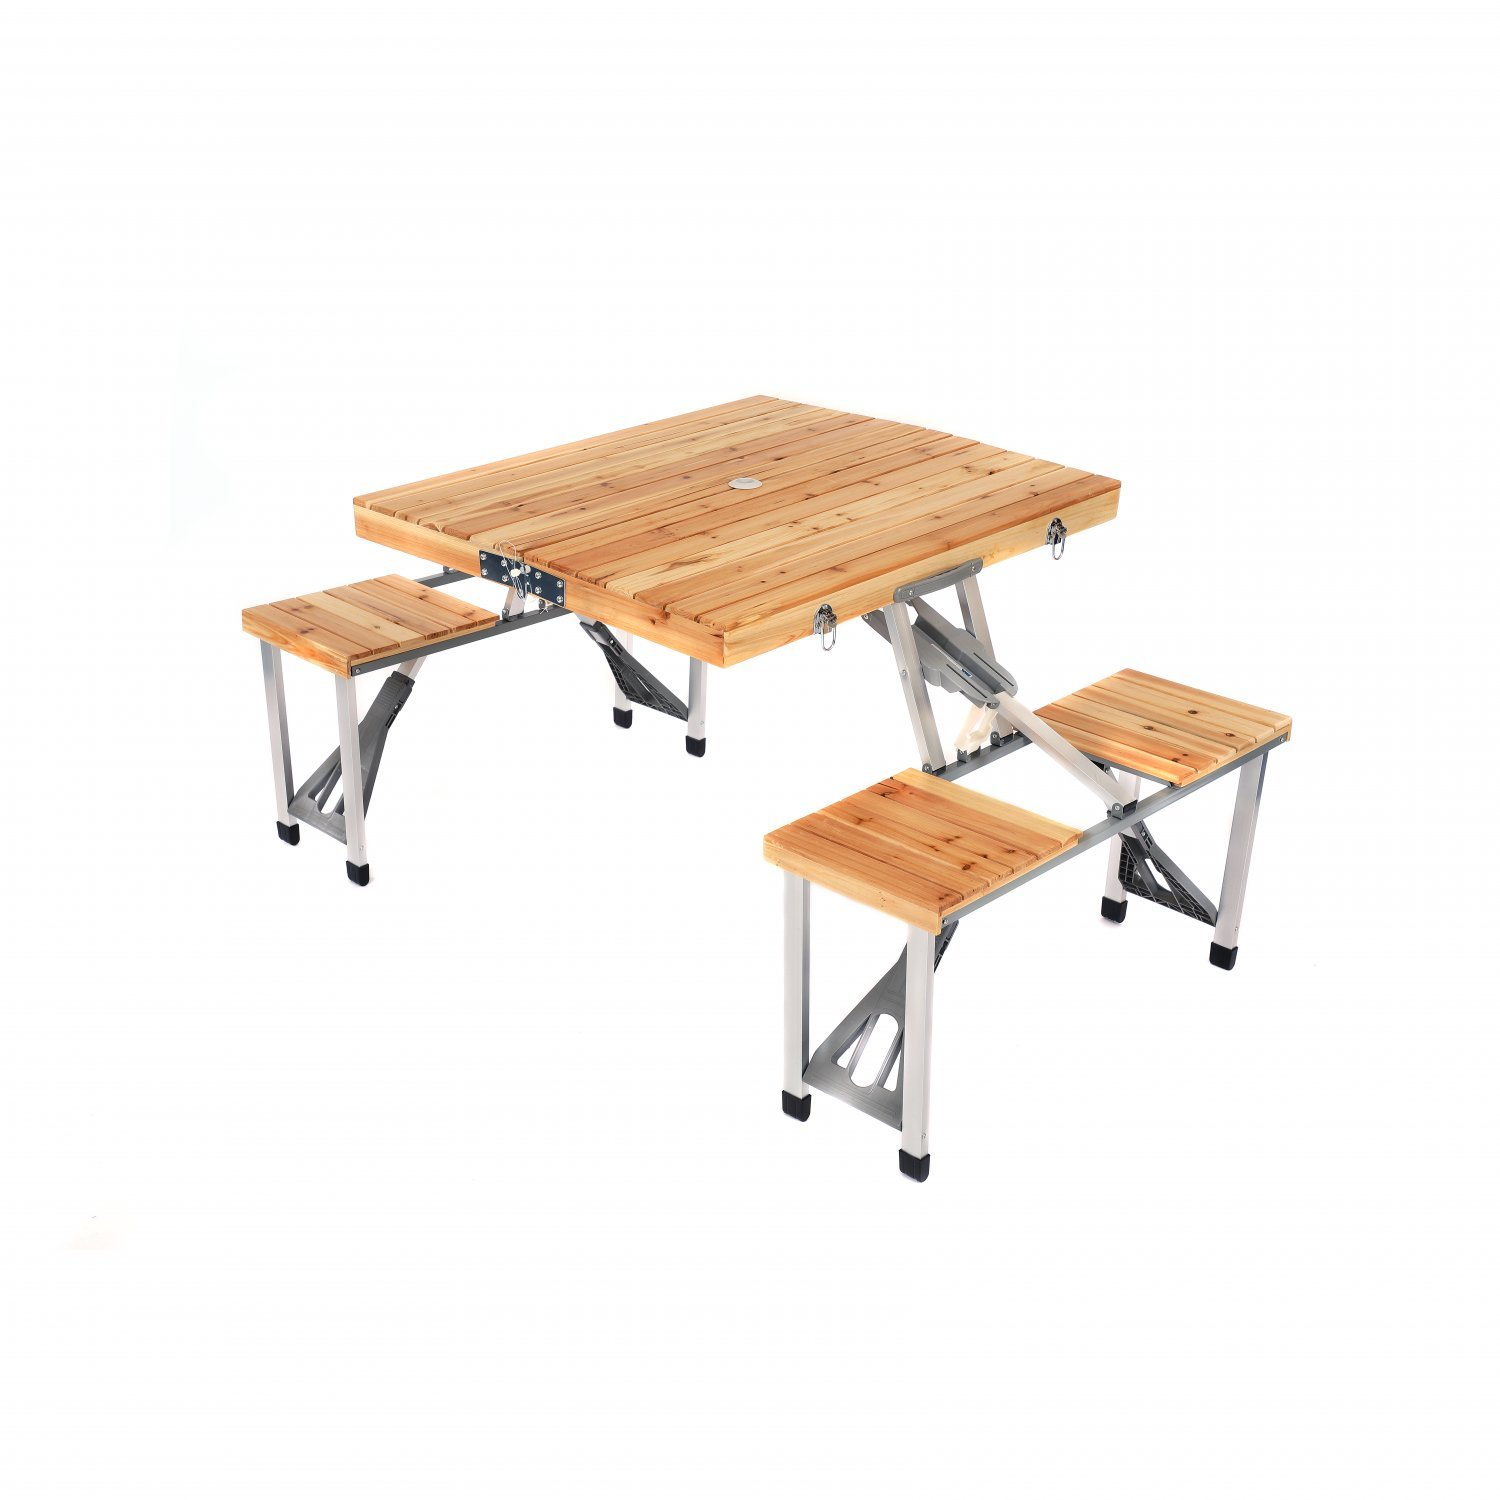 - Wooden Folding Outdoor Picnic Table And Bench Set 4 Seats - £43.99